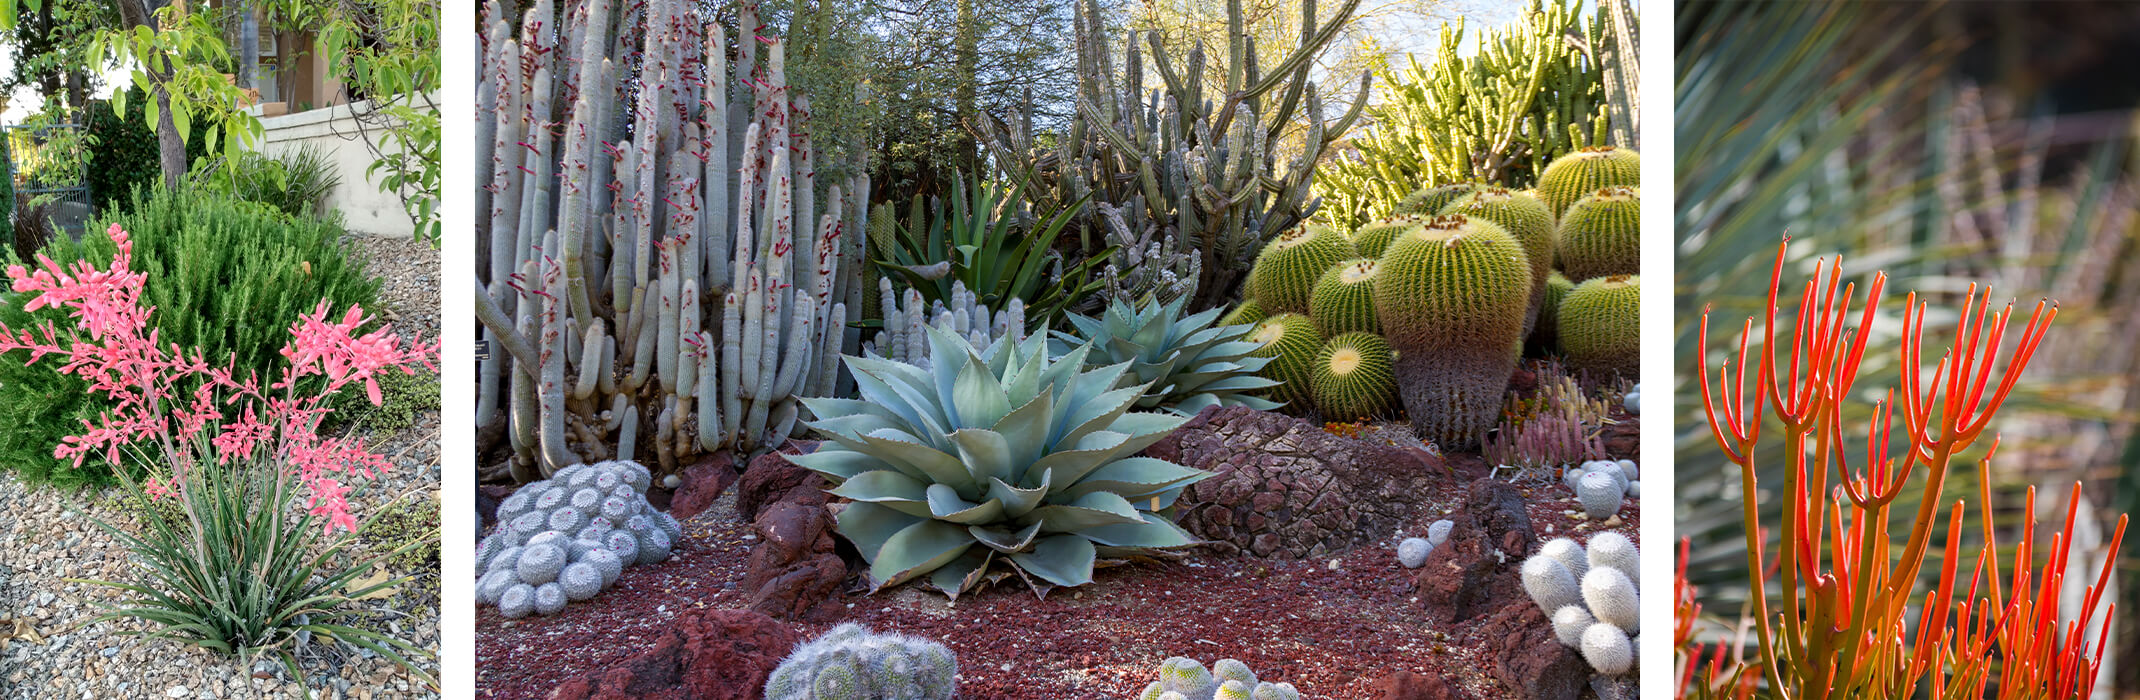 3 images: Red Yucca, a variety of cacti and succulents, and fire stick cactus